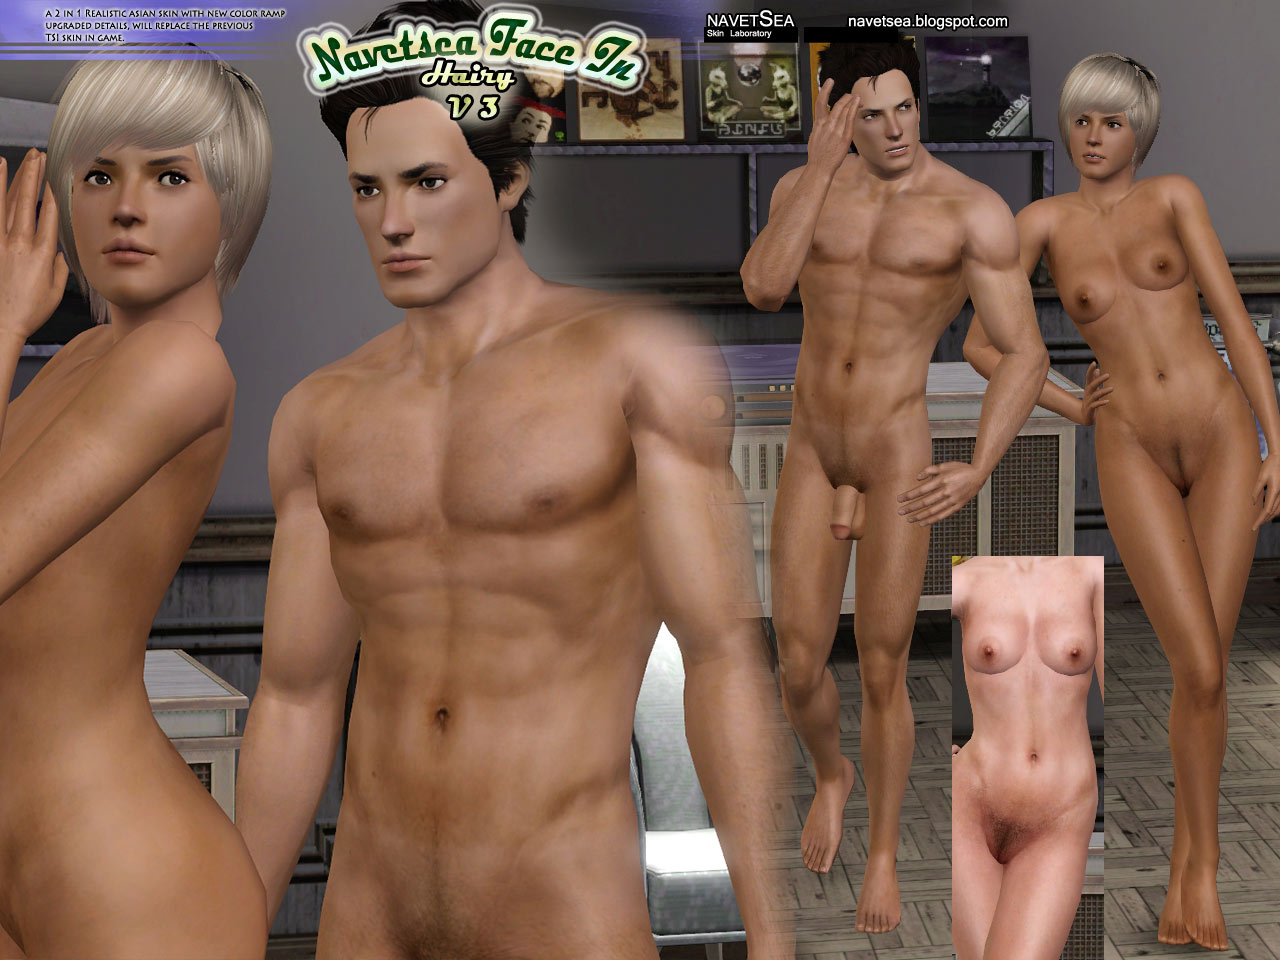 The sims family naked fucked vids